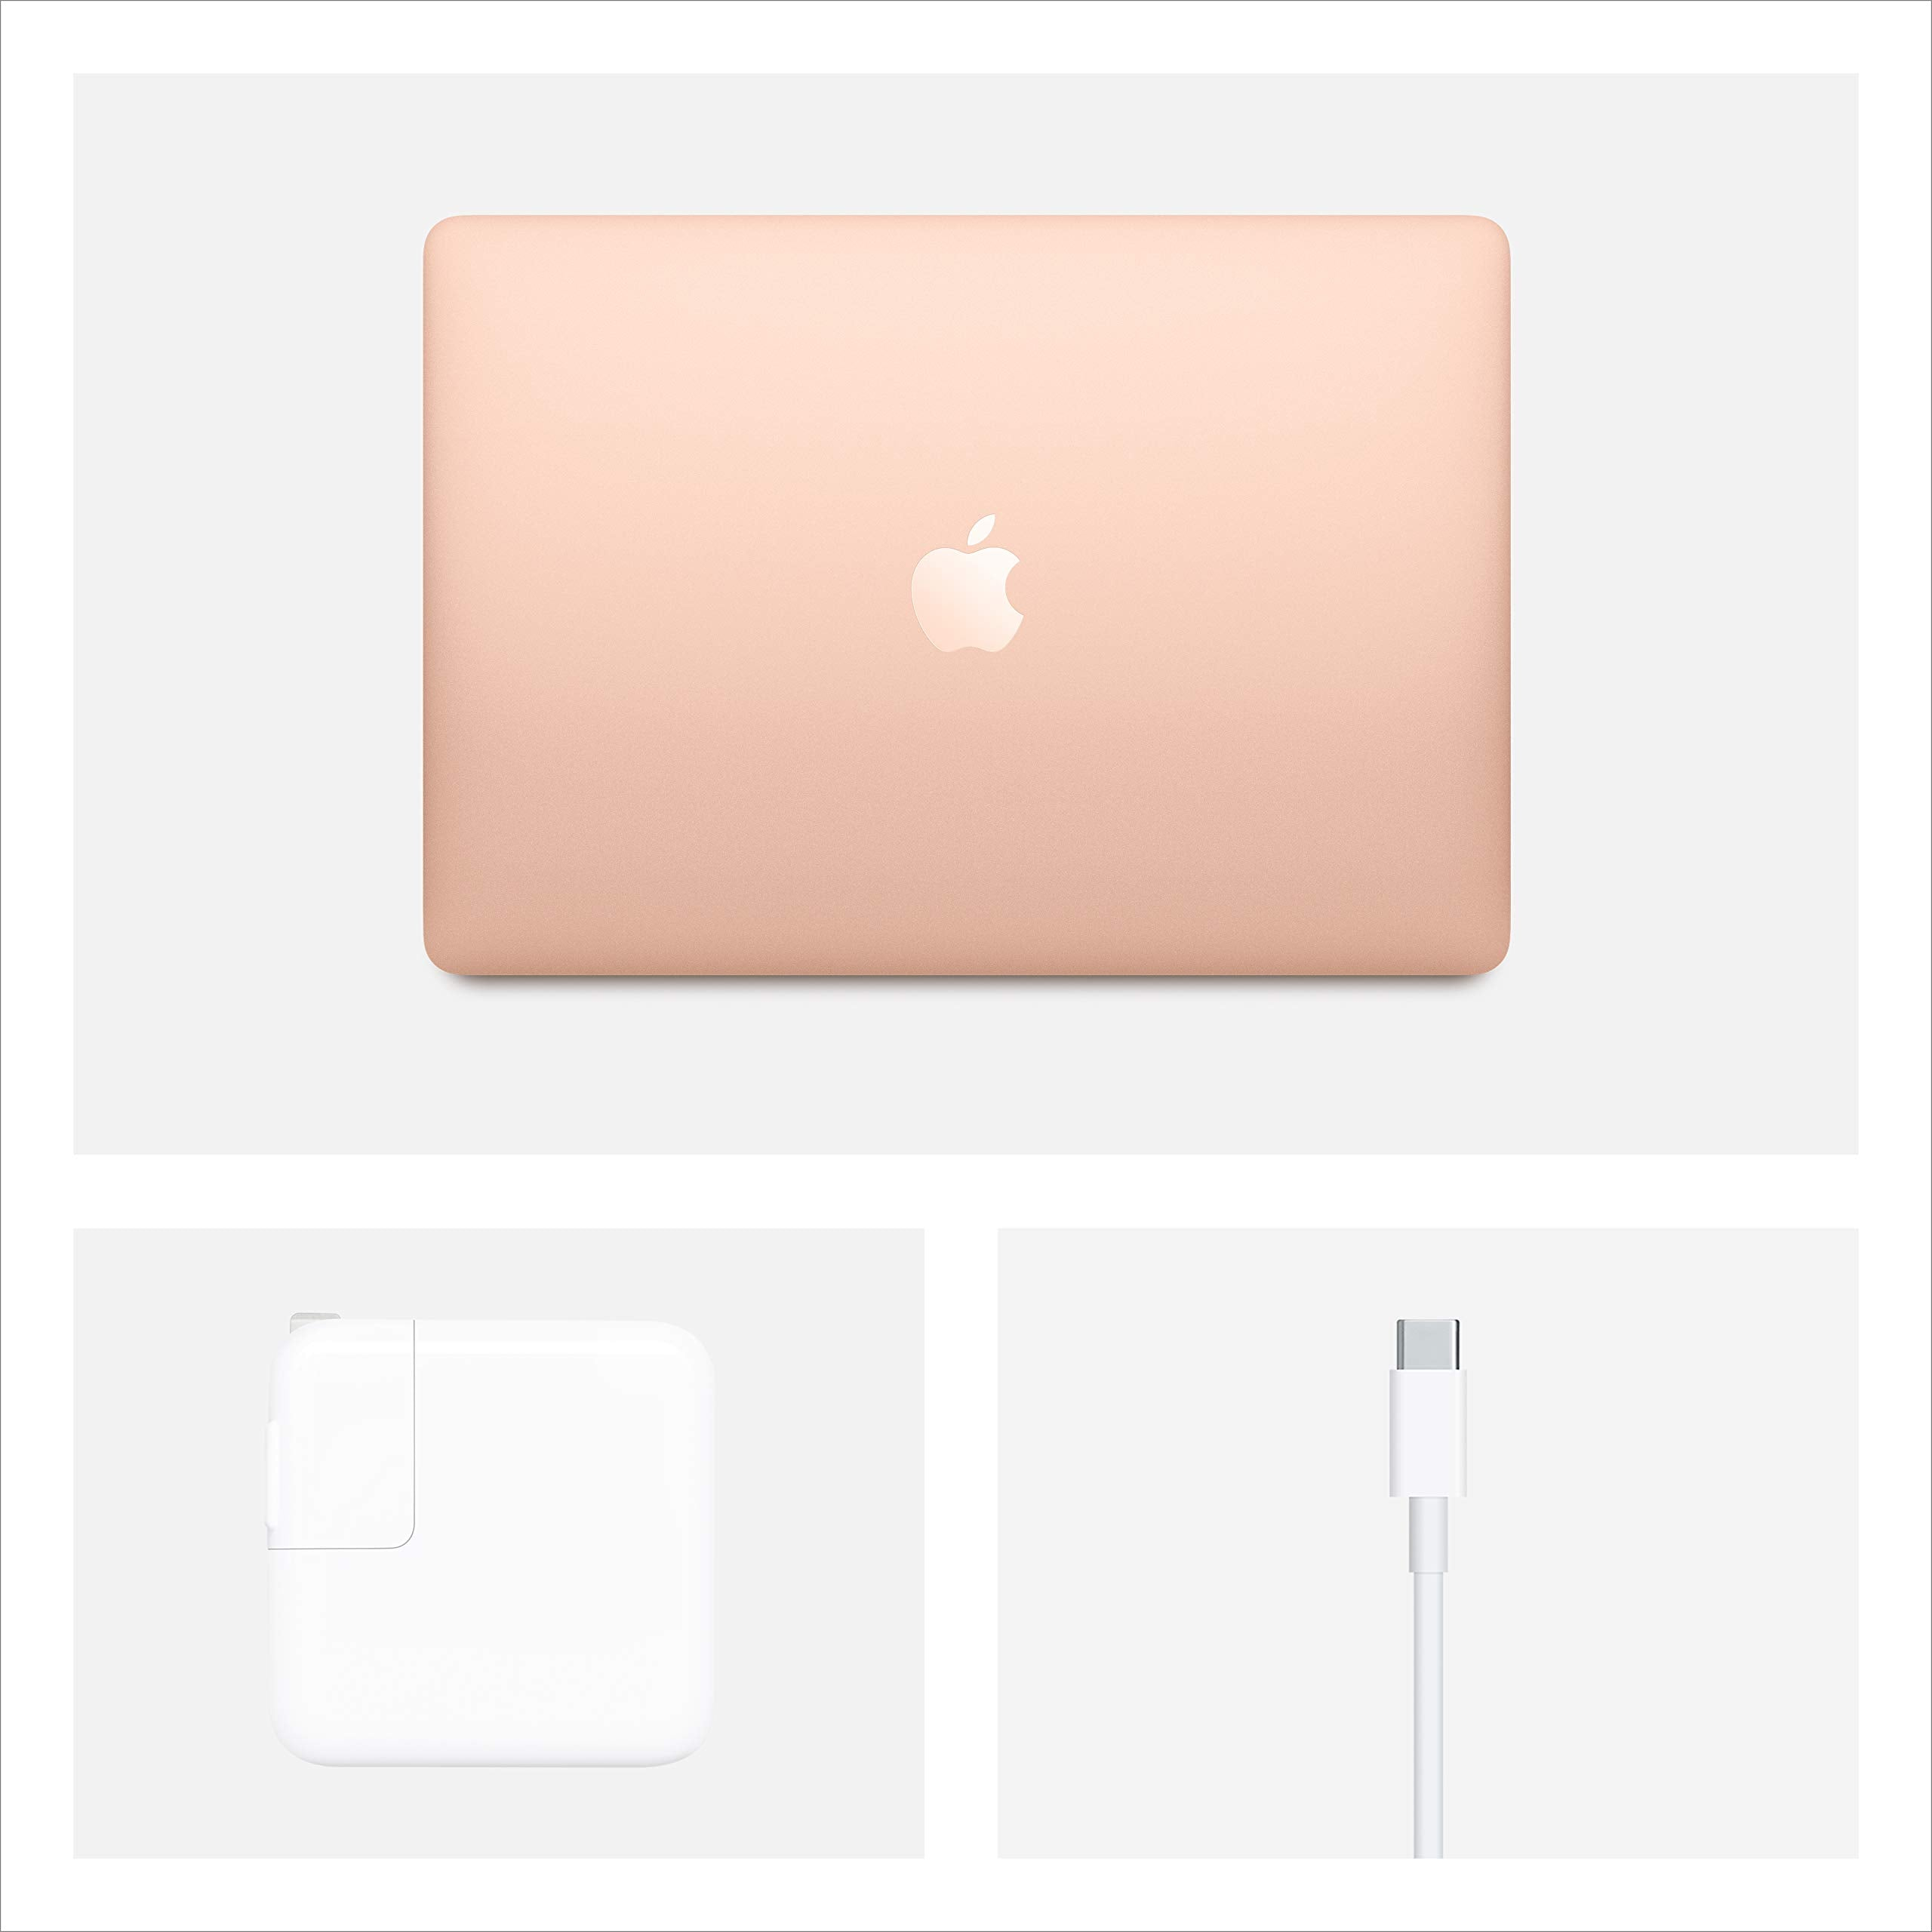 Apple MacBook Air (13-inch, 8GB RAM, 256GB SSD Storage) - Gold (Latest Model)